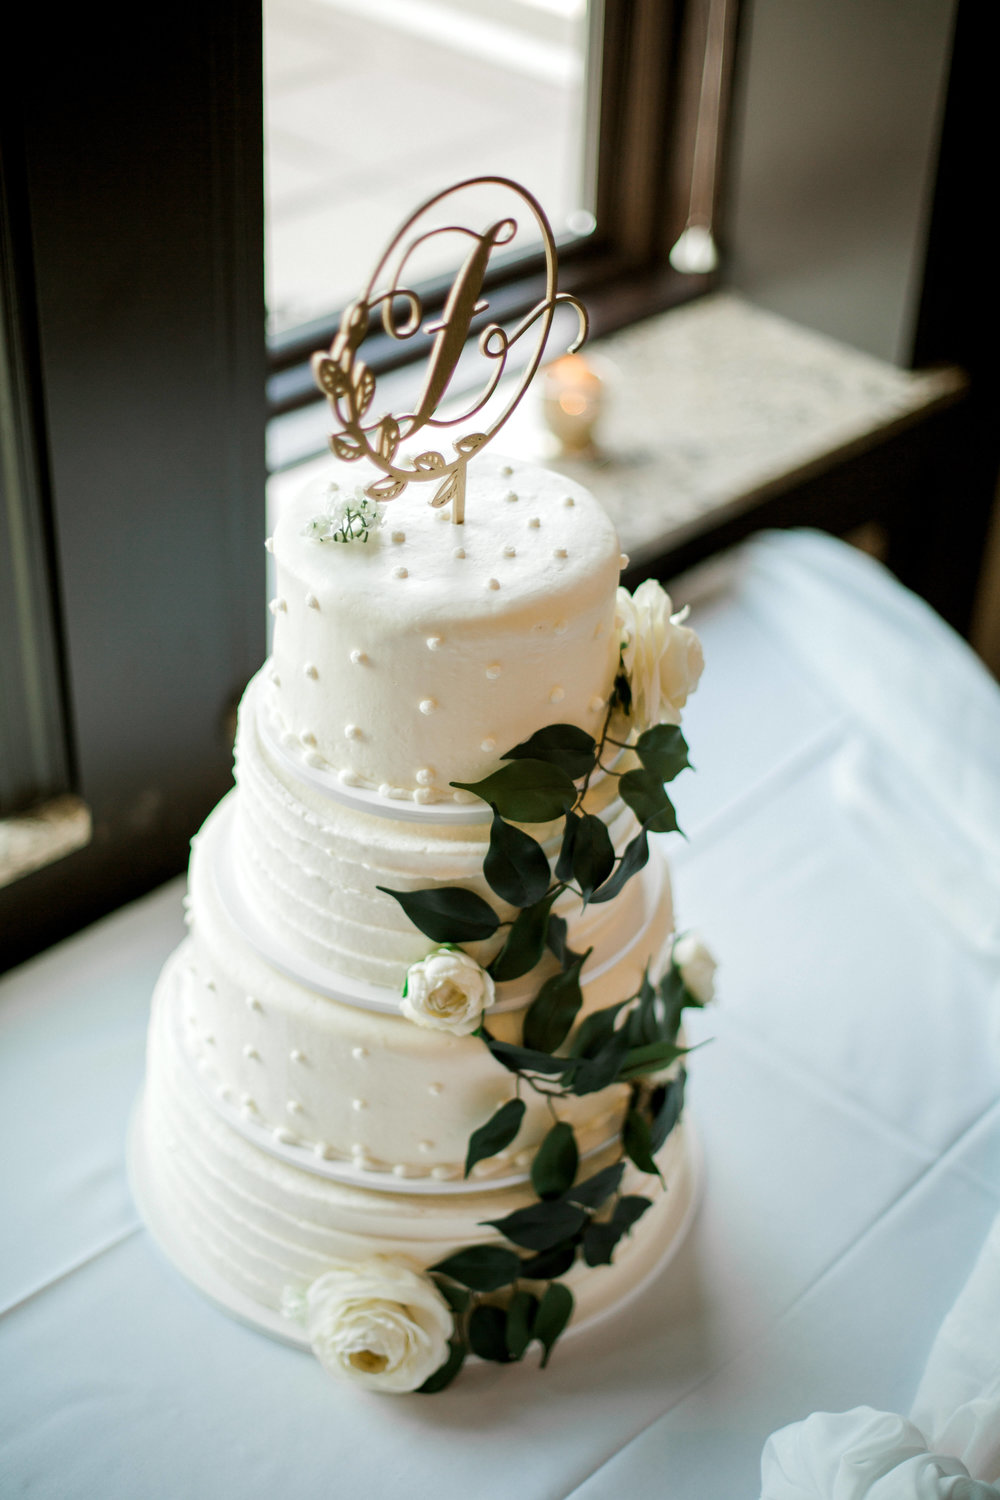 four tiered white cake with greenery and last name initial laser cut cake topper | Lauren Baker Photography | Sixpence Events Blog Post: Must Have Wedding Photography Tips